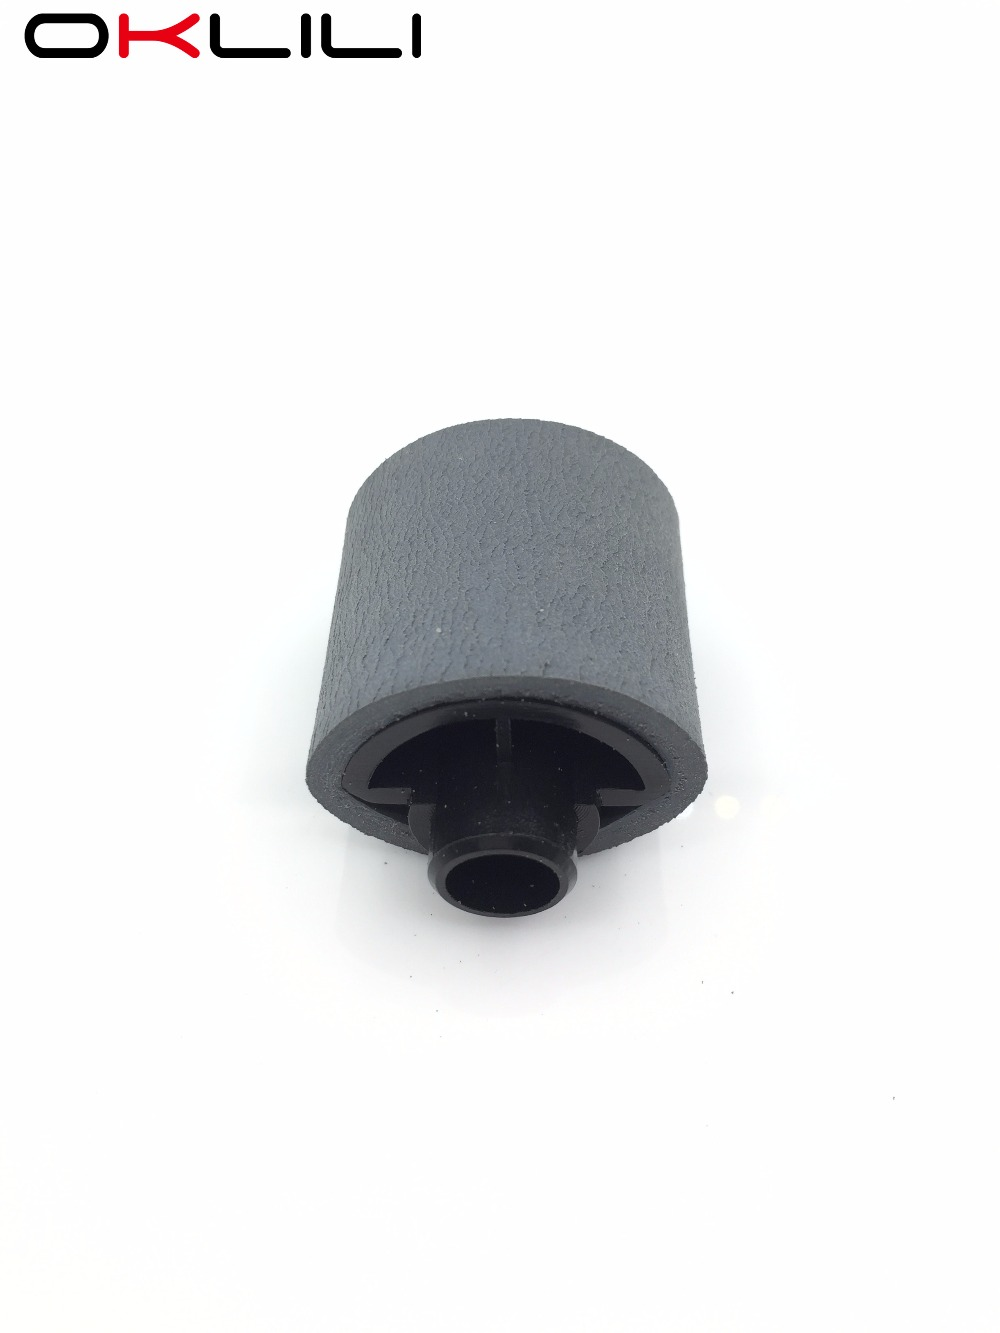 10PCX JC72-01231A Pickup Roller for Samsung ML1510 1710 1740 1750 2250 SCX4016 4116 4100 4200 4220 4300 4500 4520 4720 SF560 565 free shipping 10 pcs jc72 01231a pickup roller new compatible for samsung for ml 1510 1710 1740 1750 scx 4200 416 4116 4216